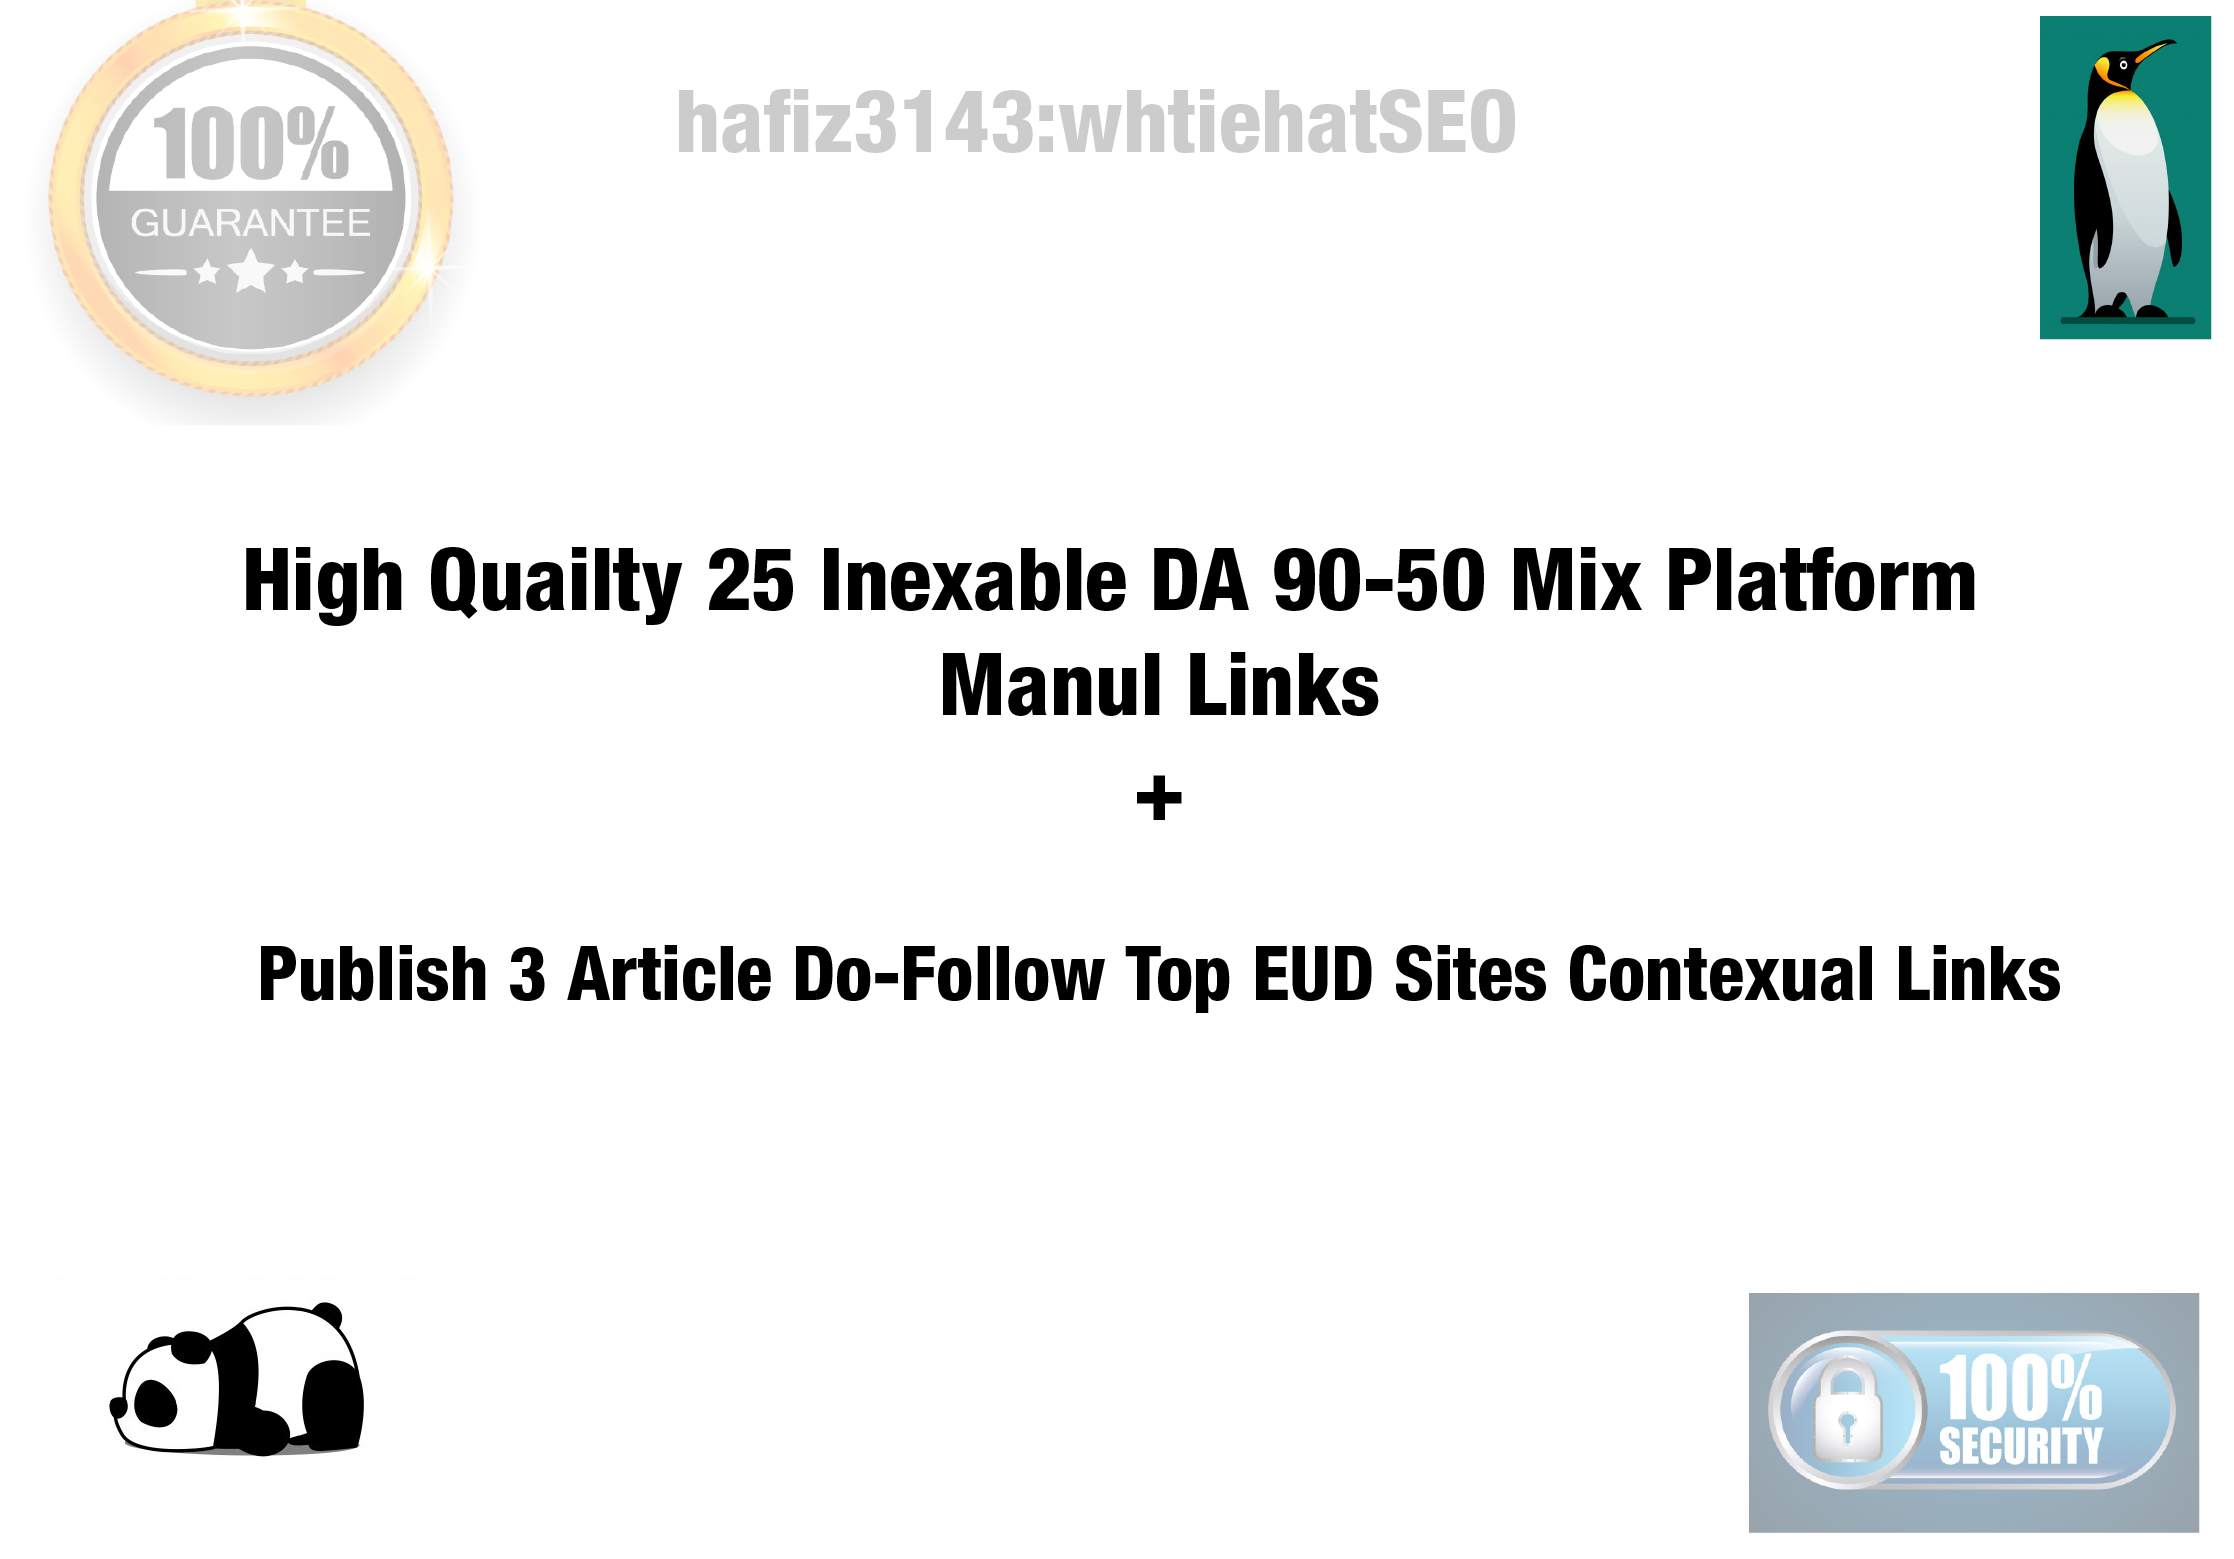 DA 90-50 Most Trusted Website Indexable White Hat SEO Backlinks Plus Include 3 Edu Contextual Links